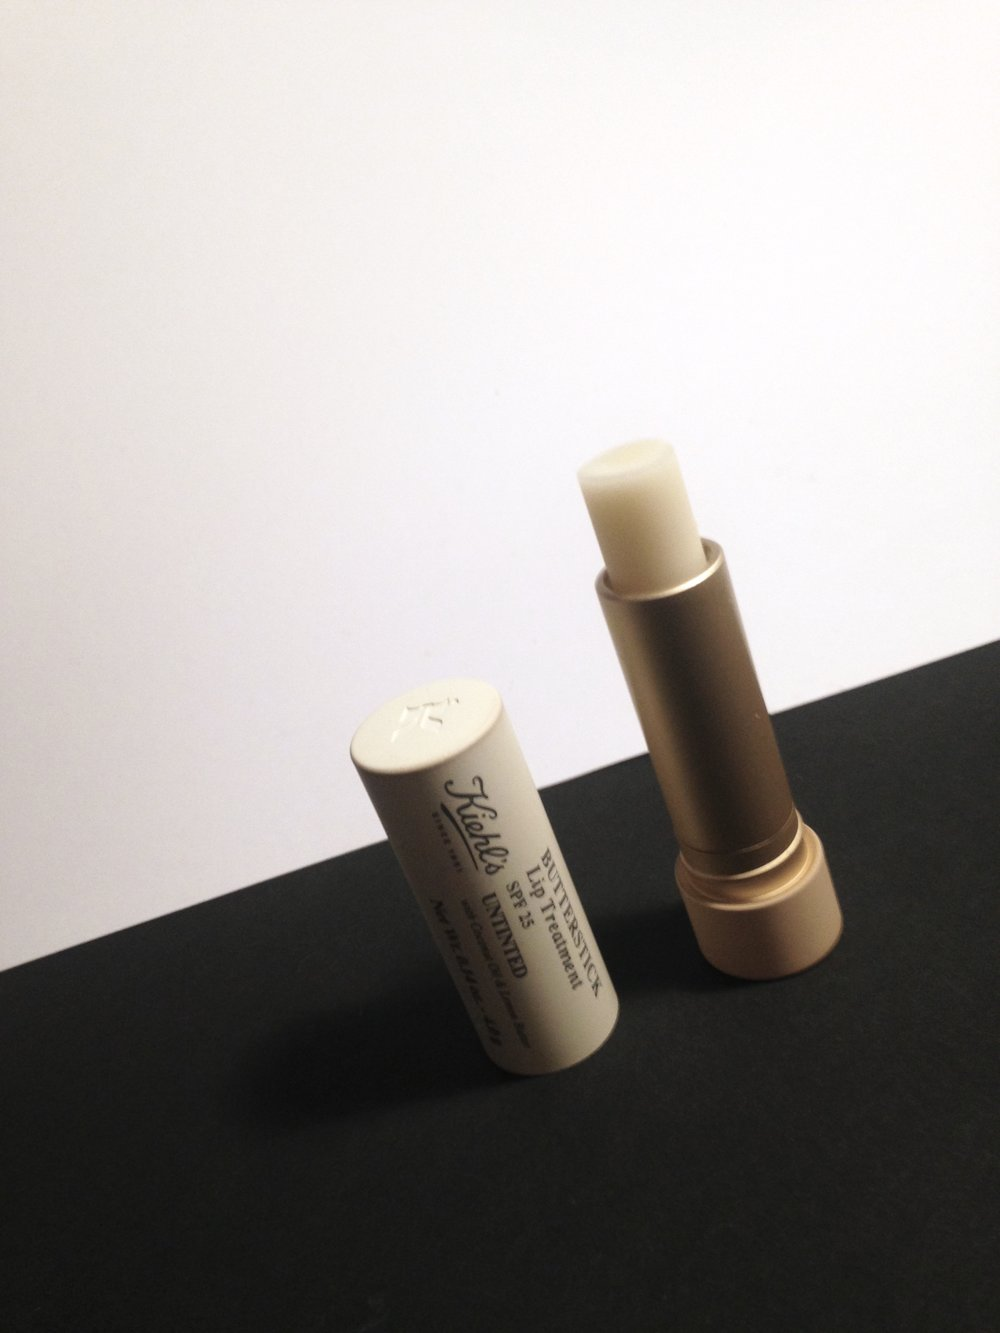 Kiehl's Lip Treatment Butterstick in Untinted